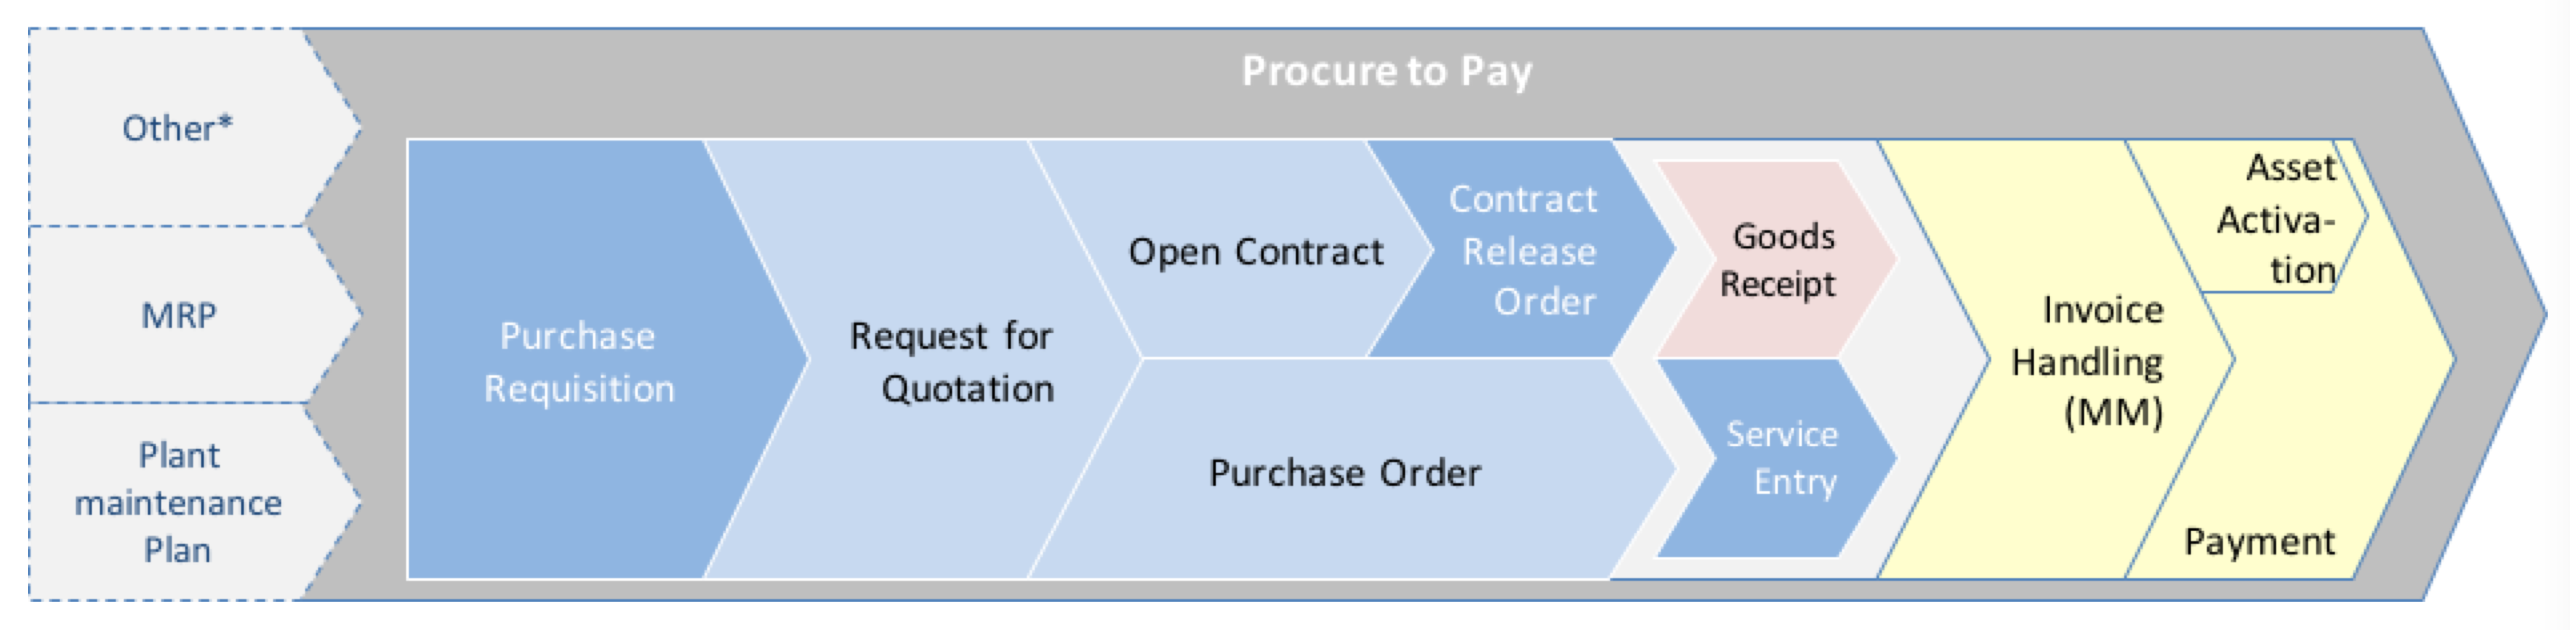 Sap Procure To Pay Process Free Sap Mm Training